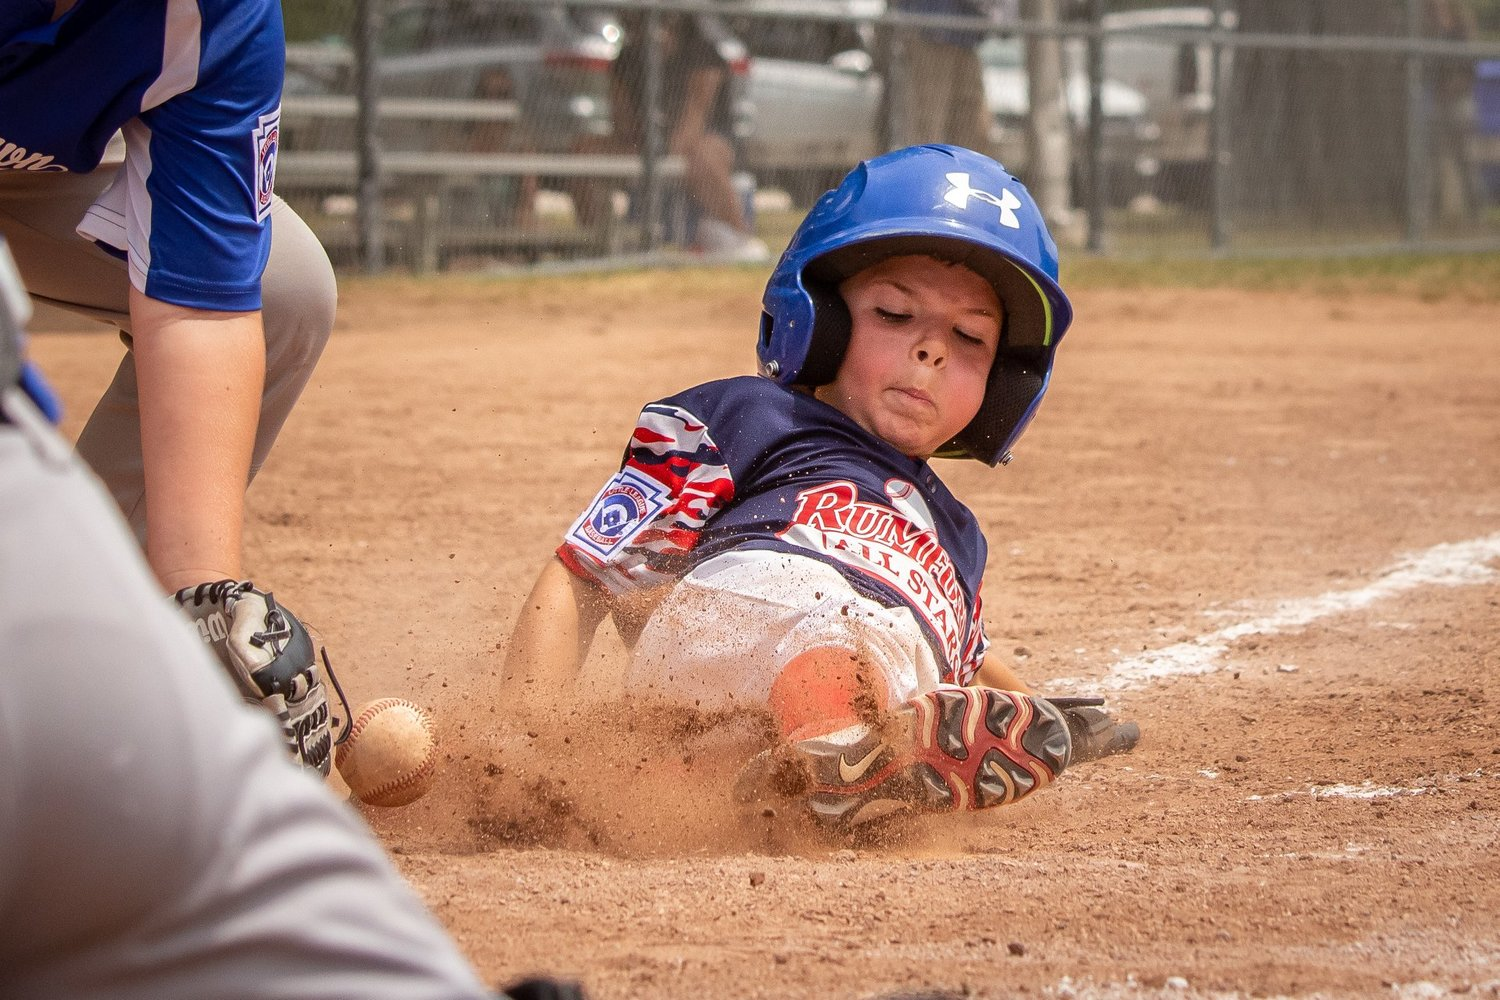 KJ Levesque of Rumford Little League scores a run. Photo by Nina Levesque.